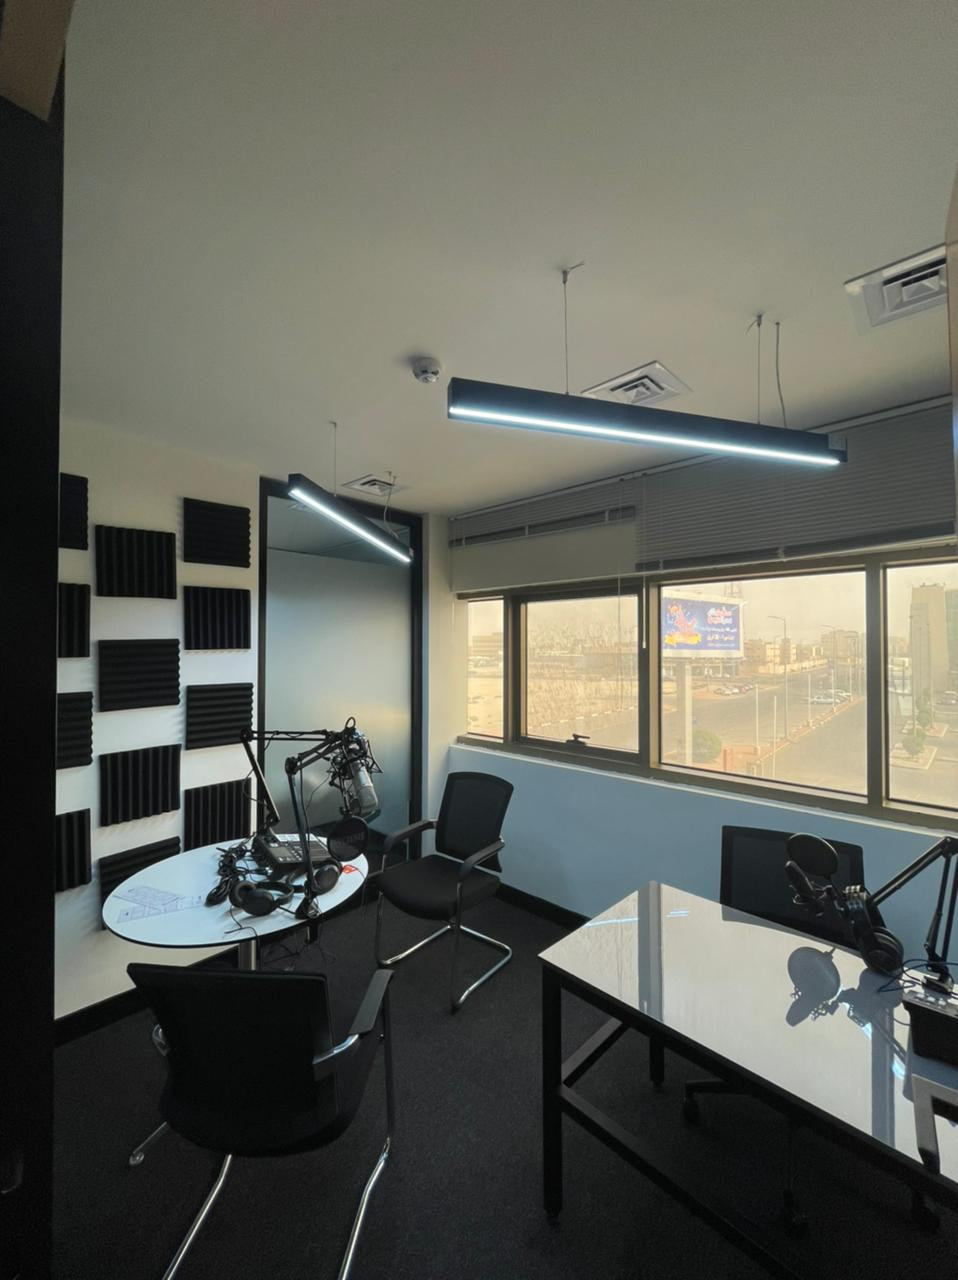 Podcast room